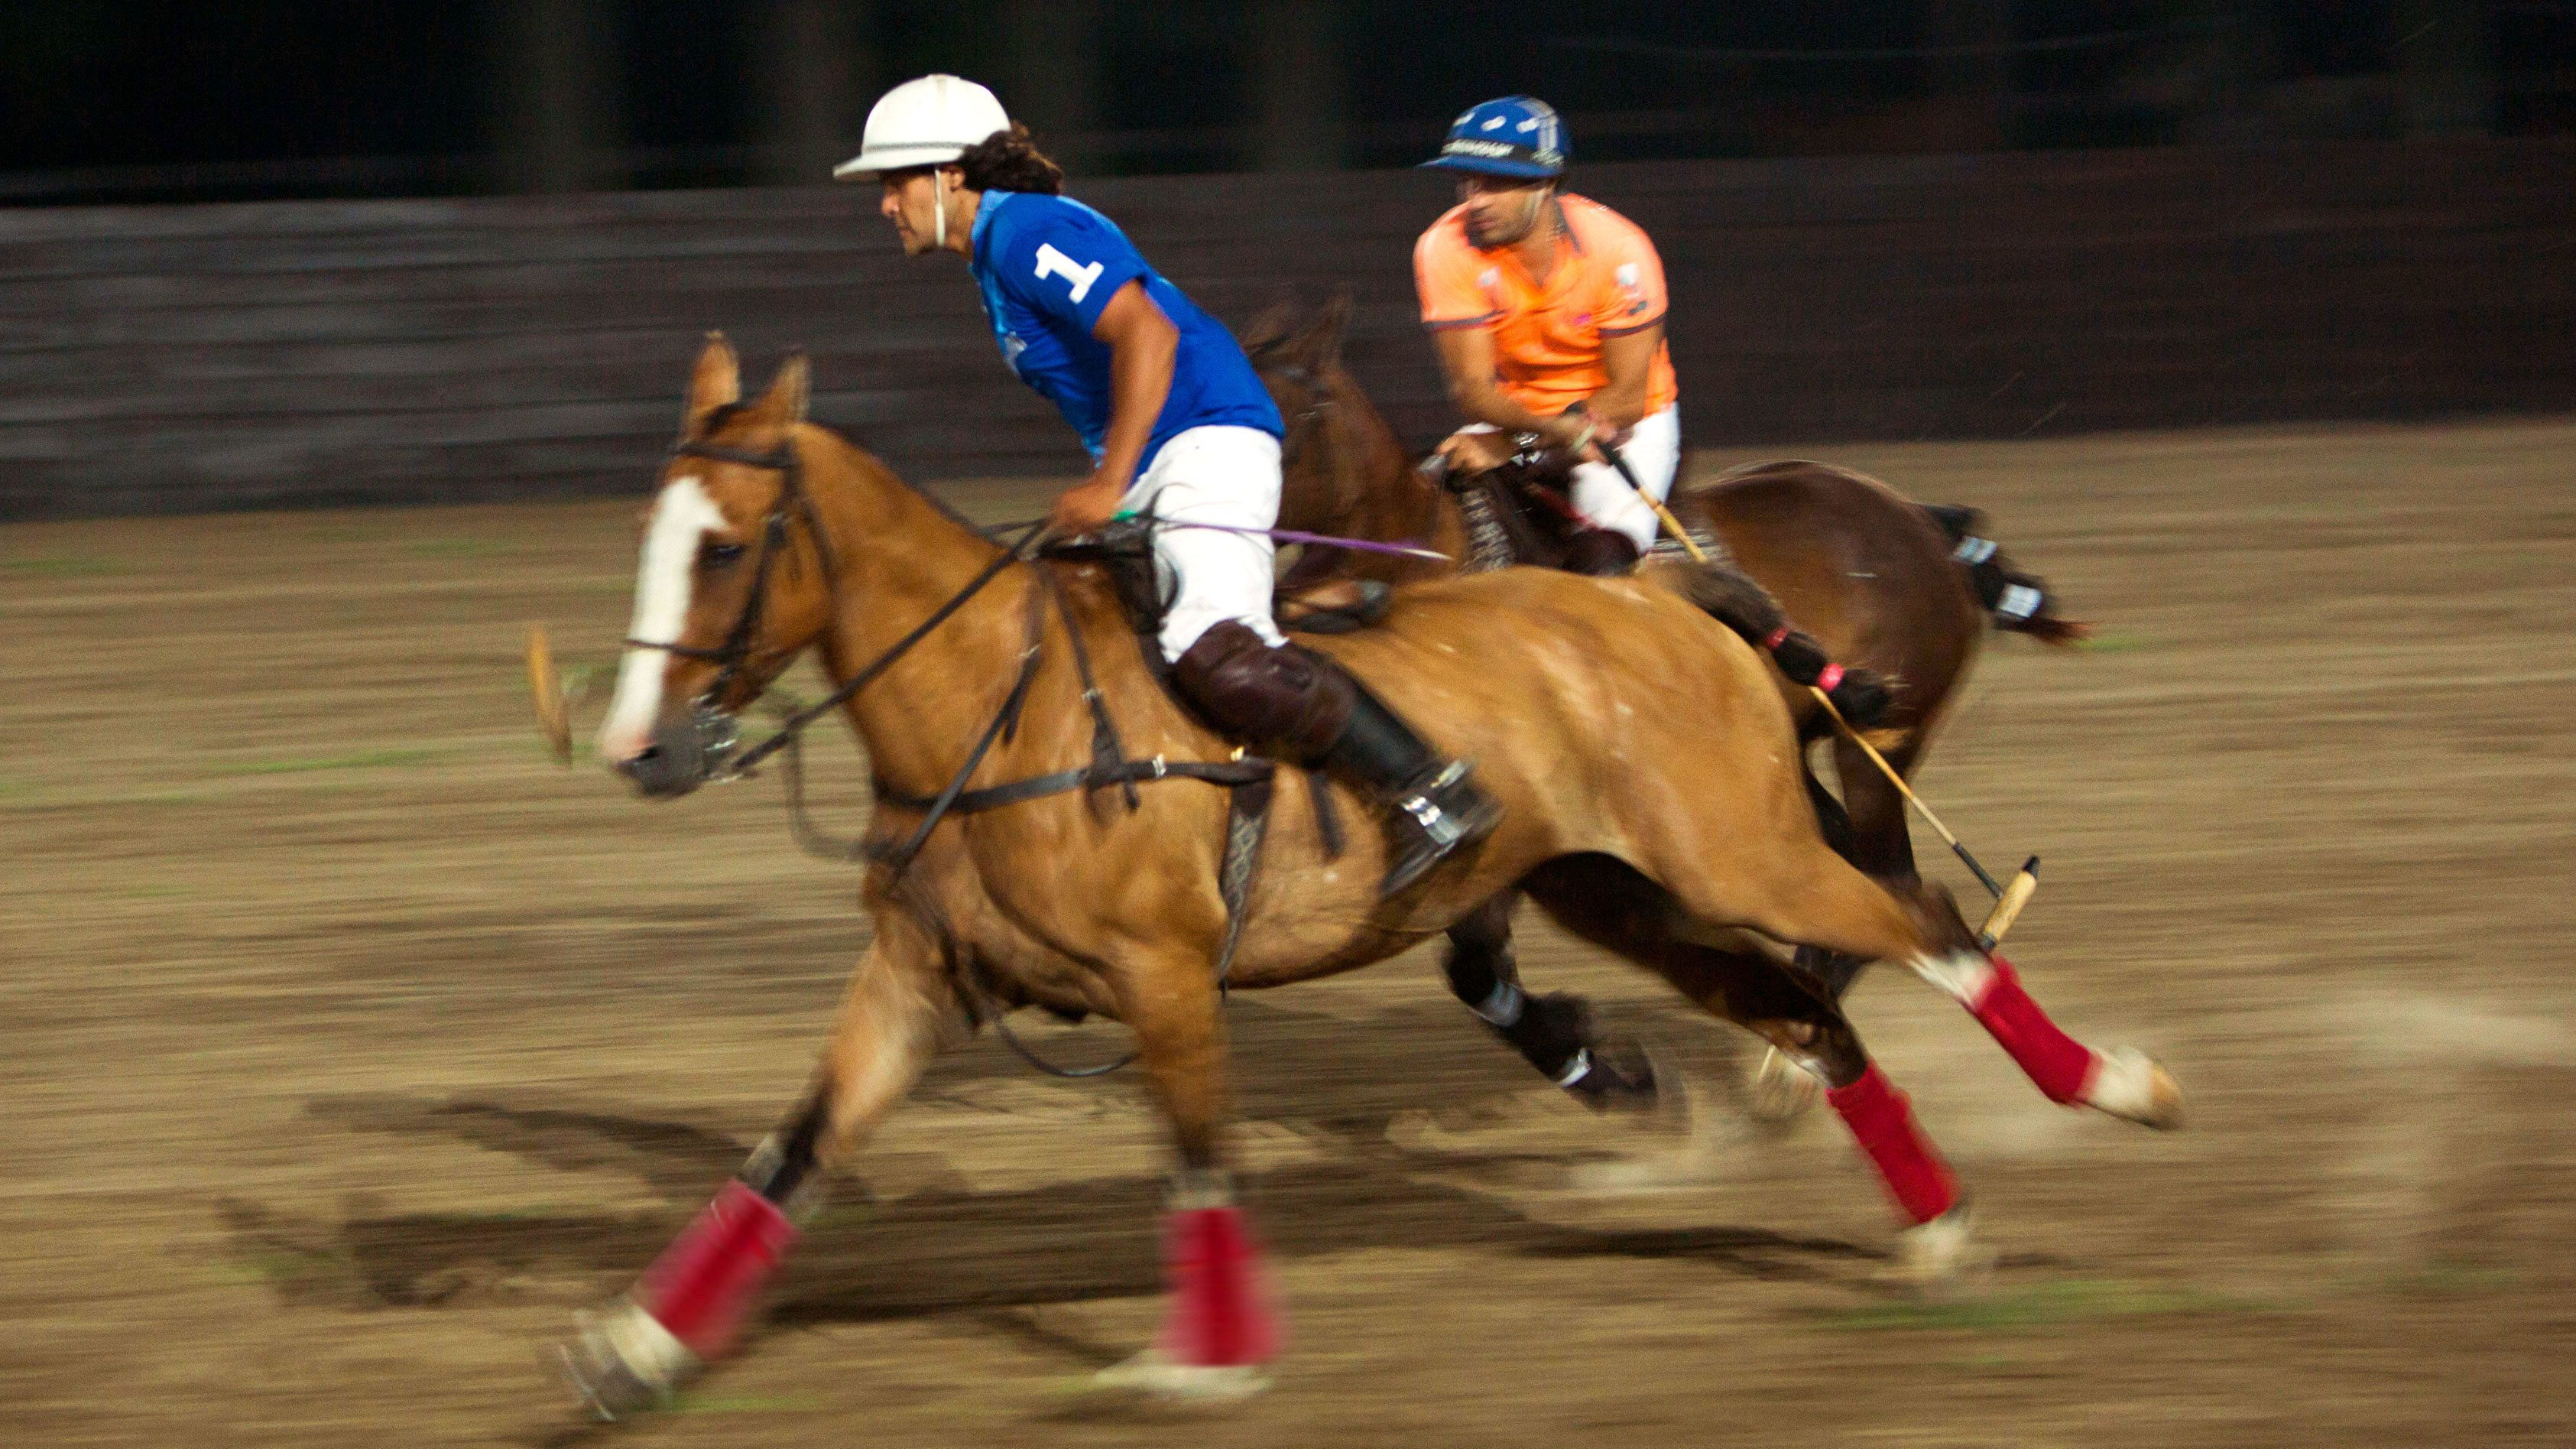 Two people on horseback playing Polo at night in Buenos Aires